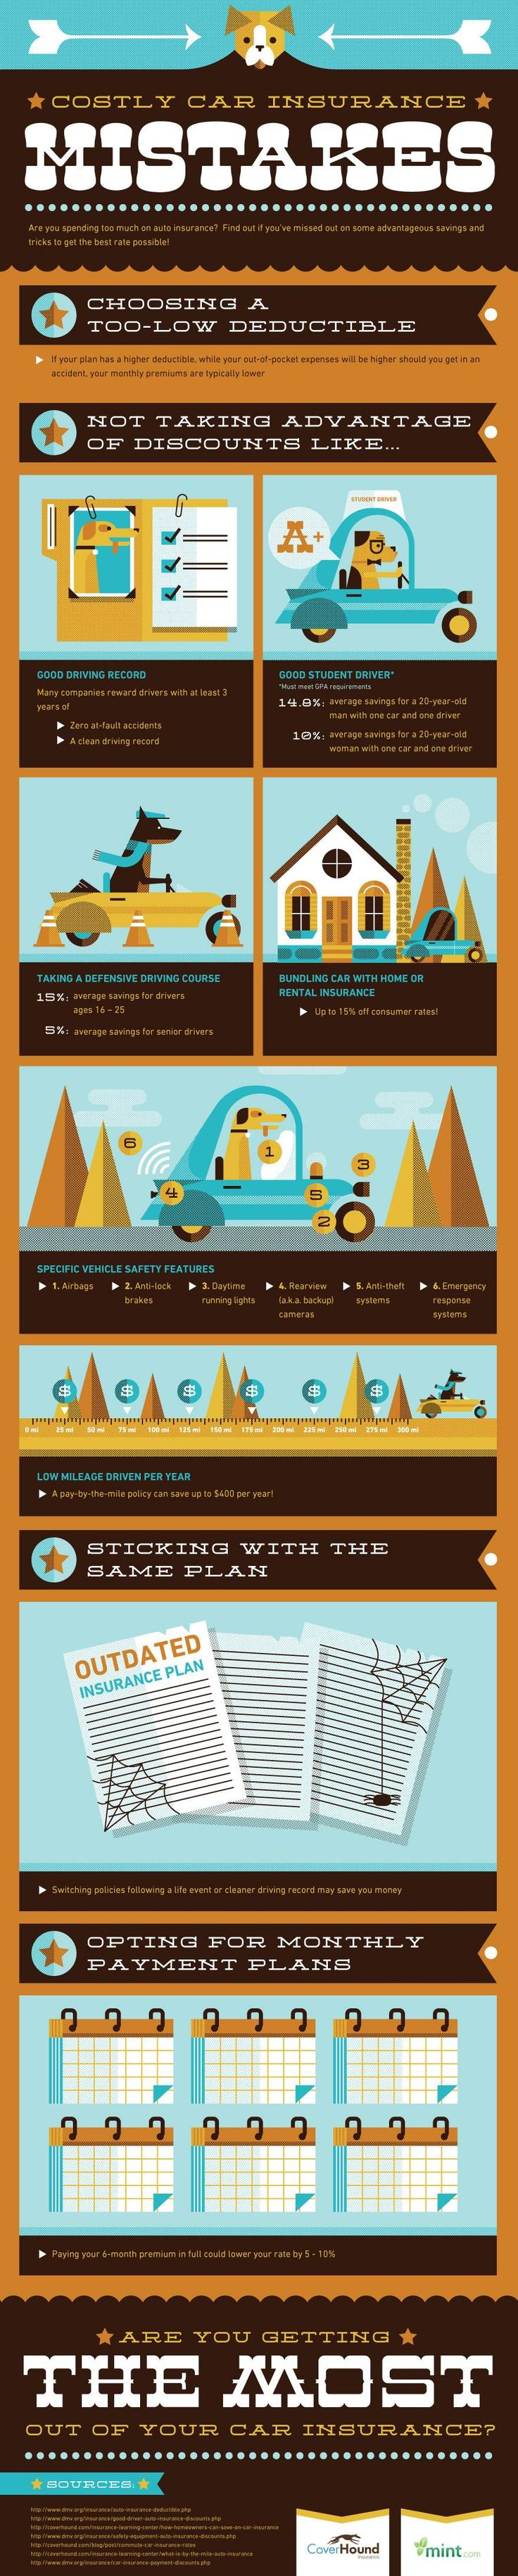 Infographic: Costly Car Insurance Mistakes